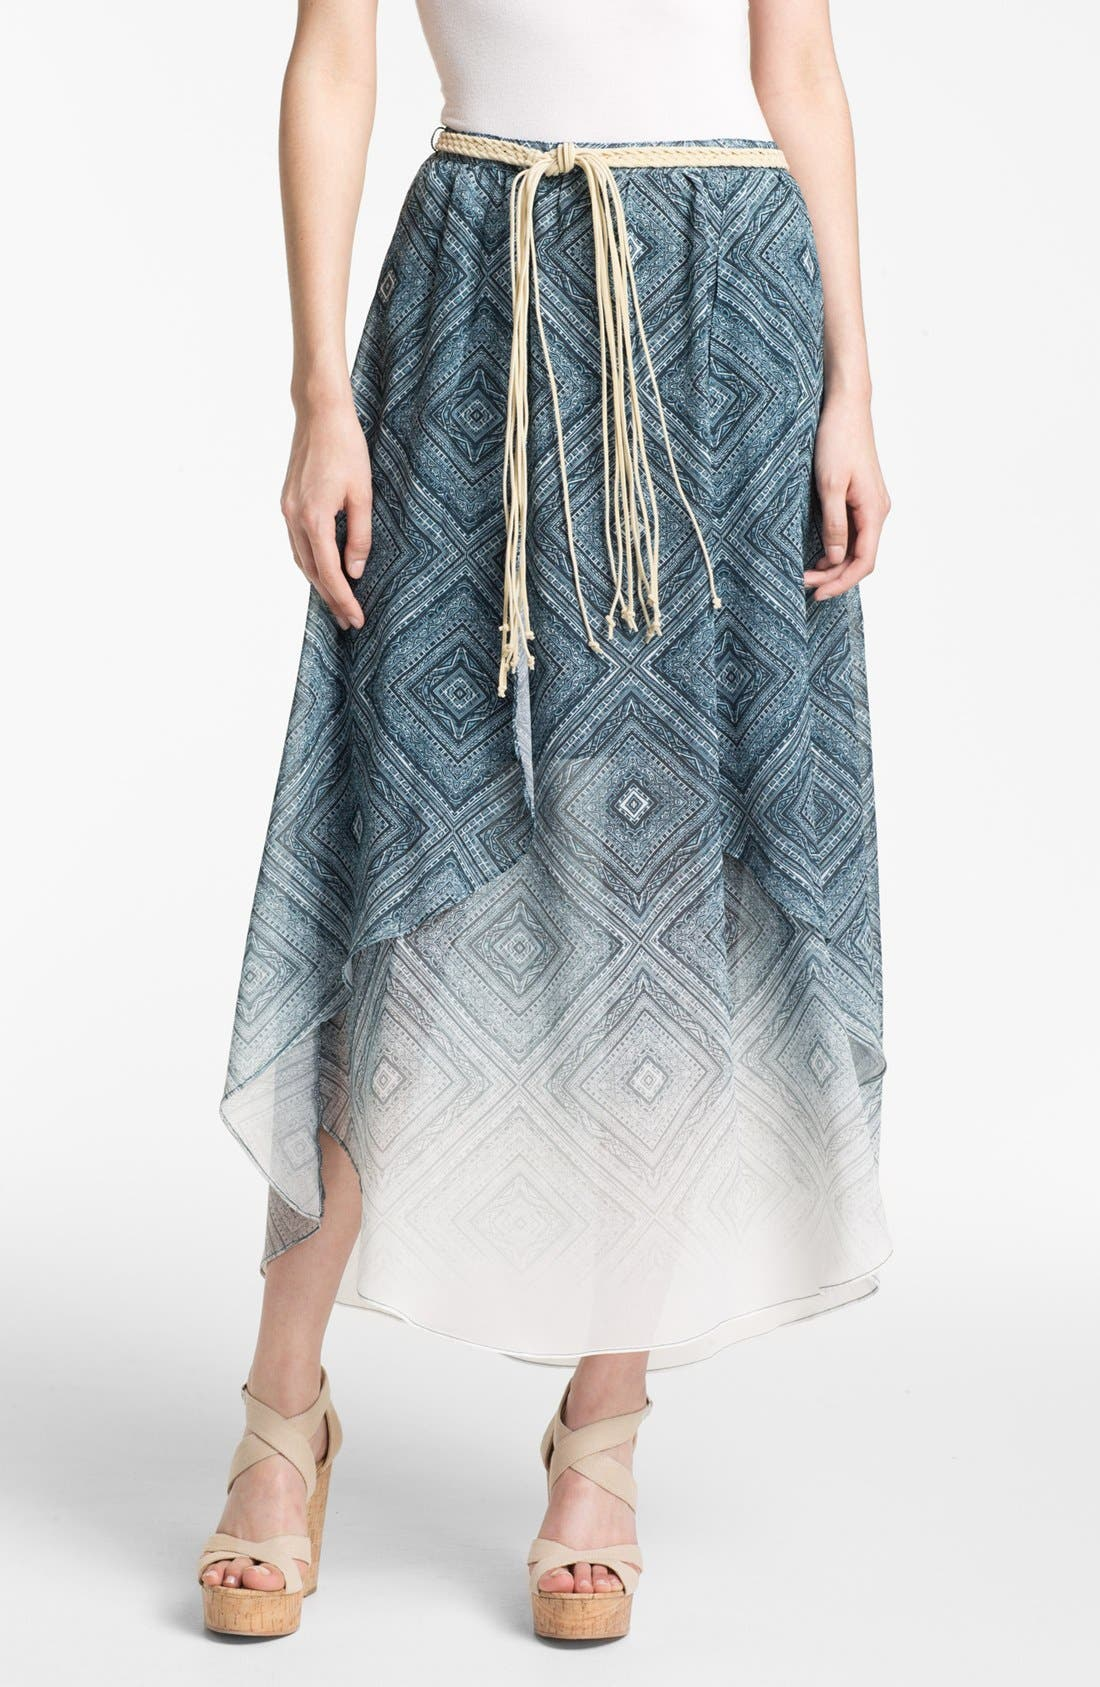 Alternate Image 1 Selected - Sanctuary Handkerchief Chiffon Skirt